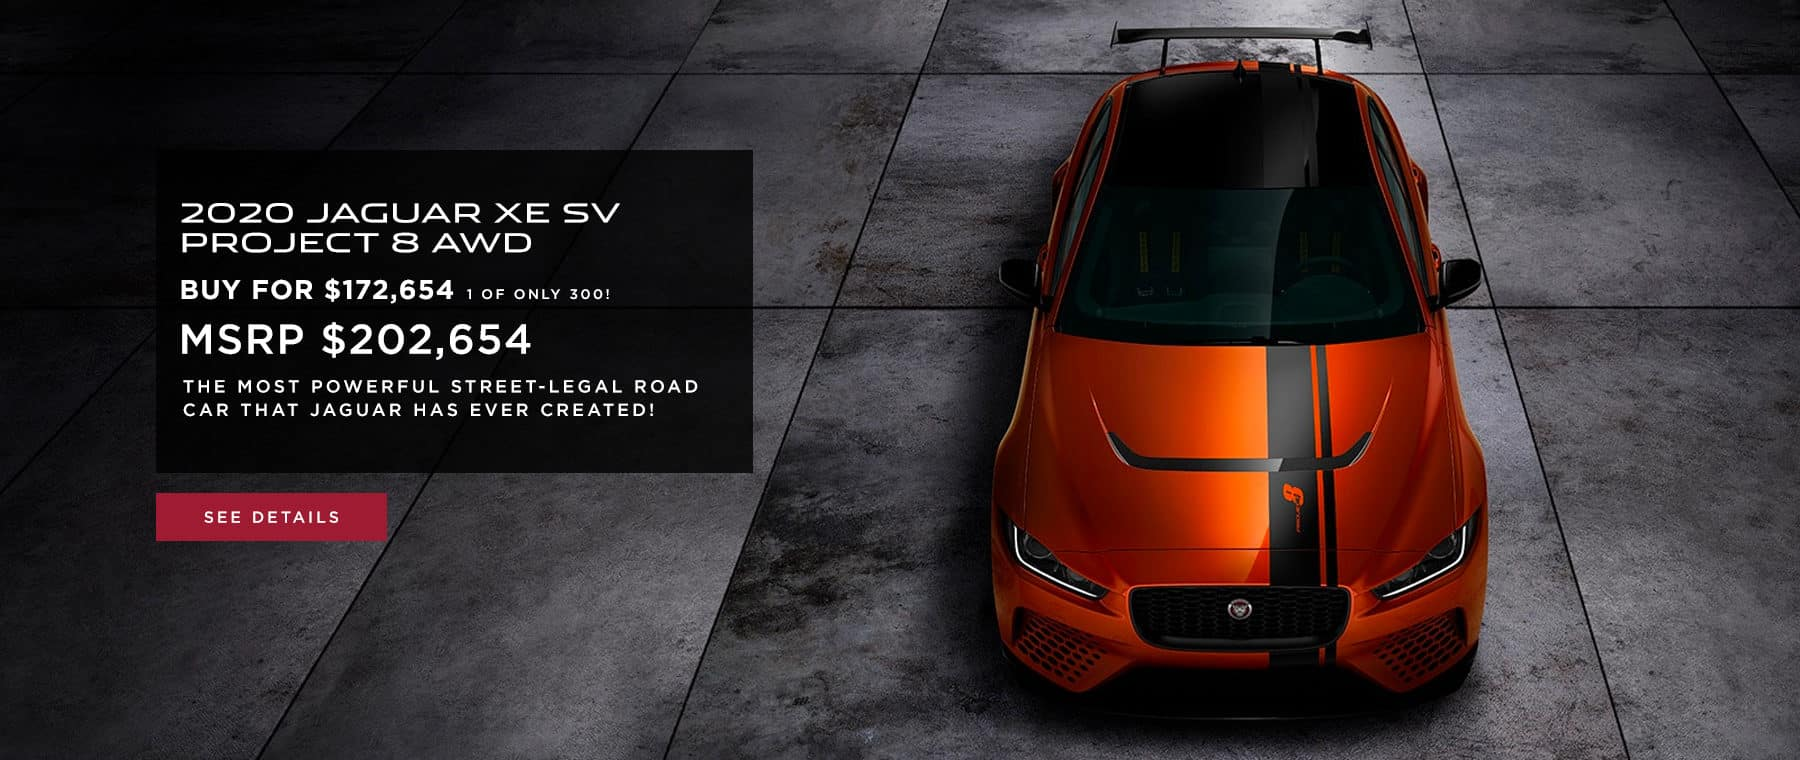 XE Project 8